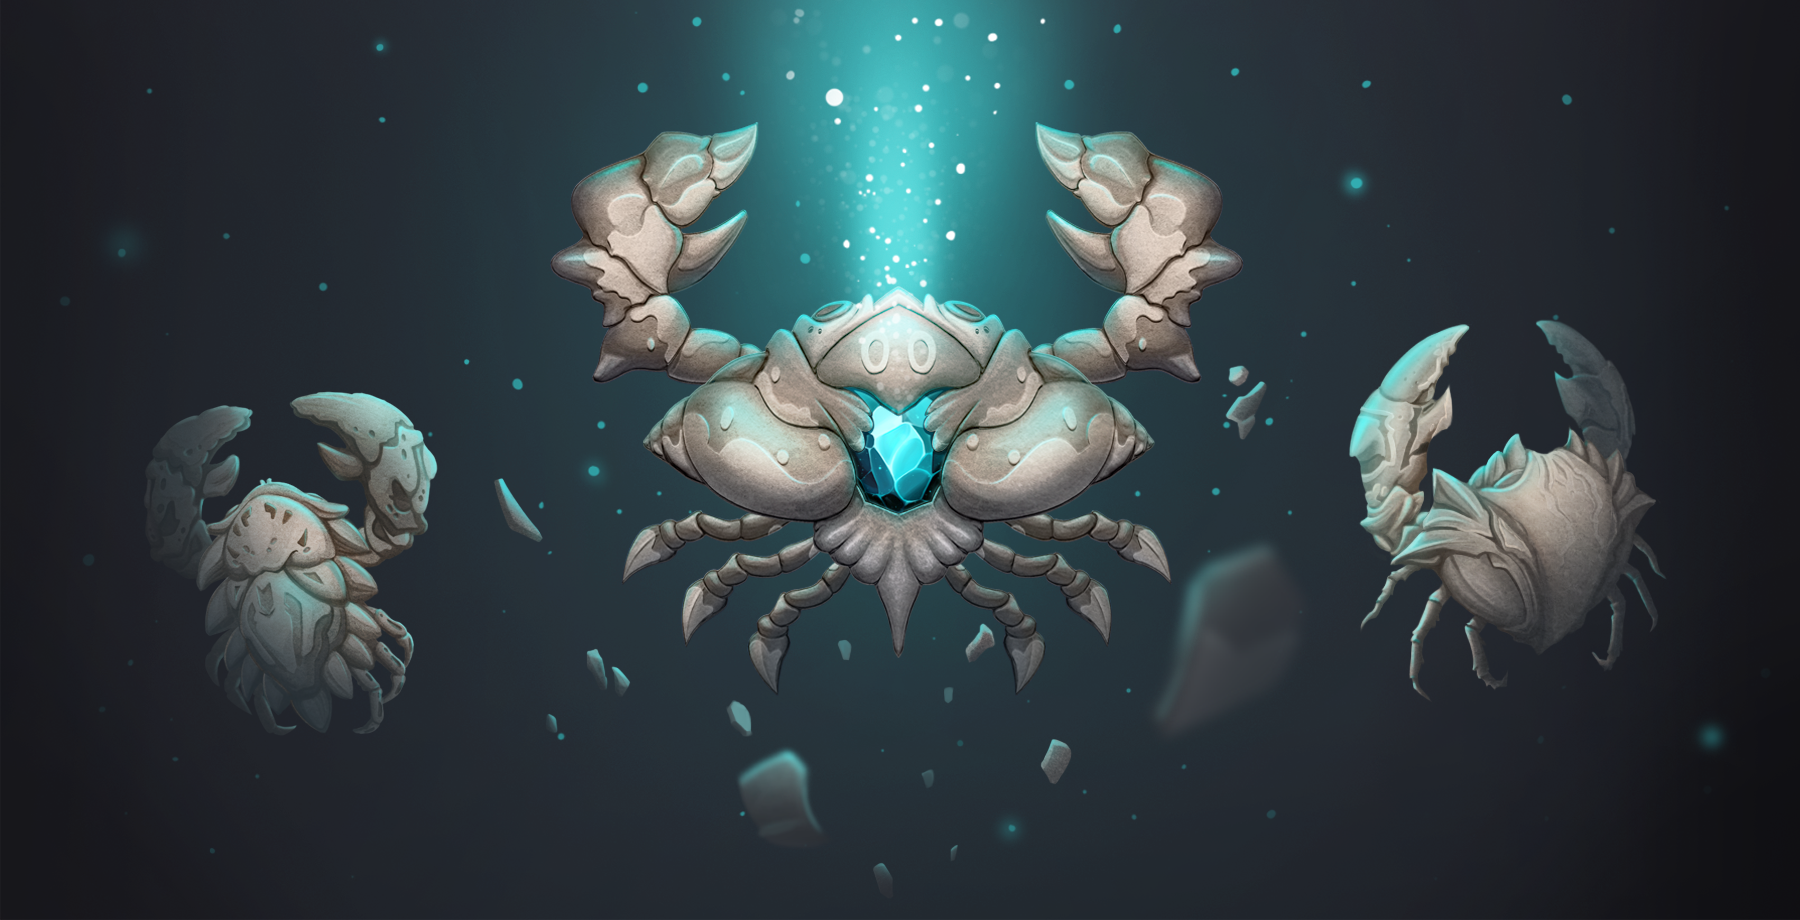 CryptantCrab Launches, Transforming Blockchain Gaming with Robust Economy